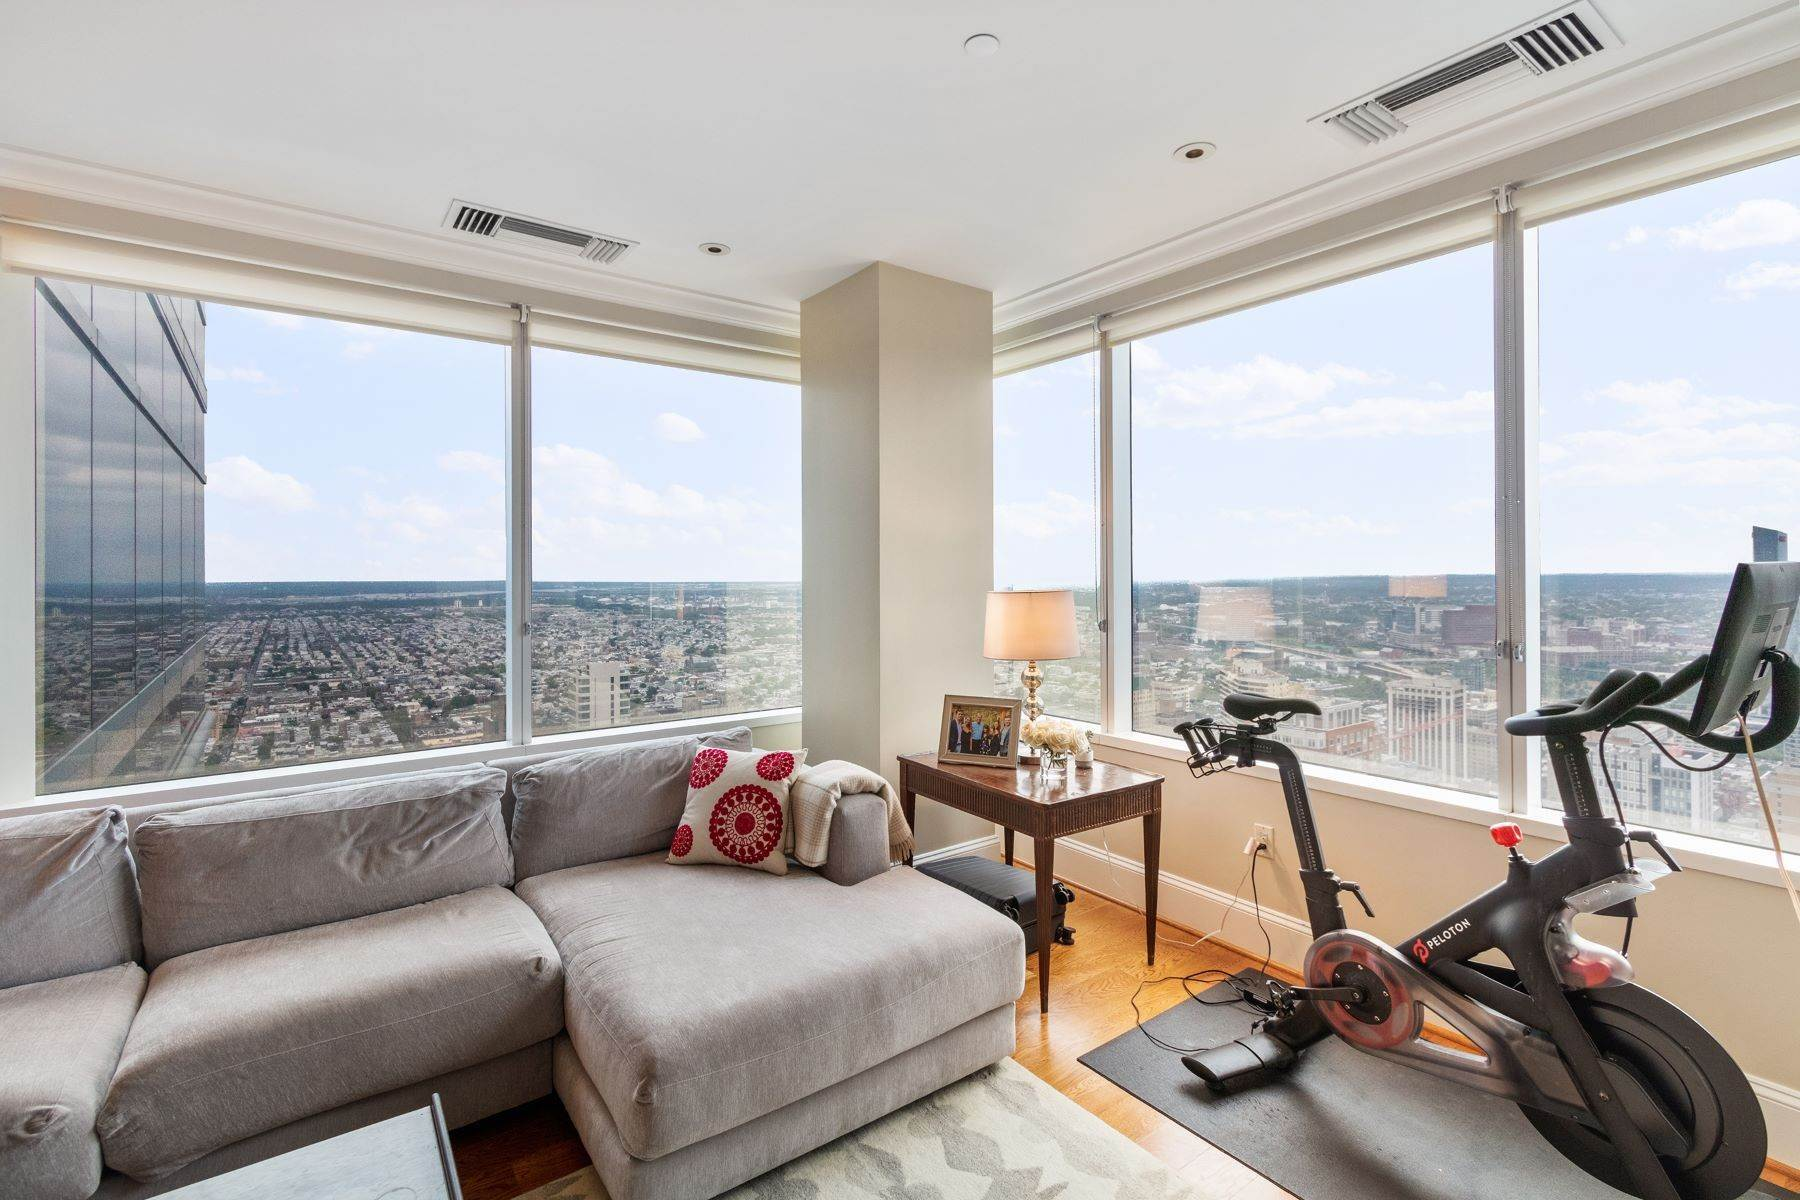 4. Apartments for Sale at 50 S 16TH ST #4202, 4202 Philadelphia, Pennsylvania 19102 United States